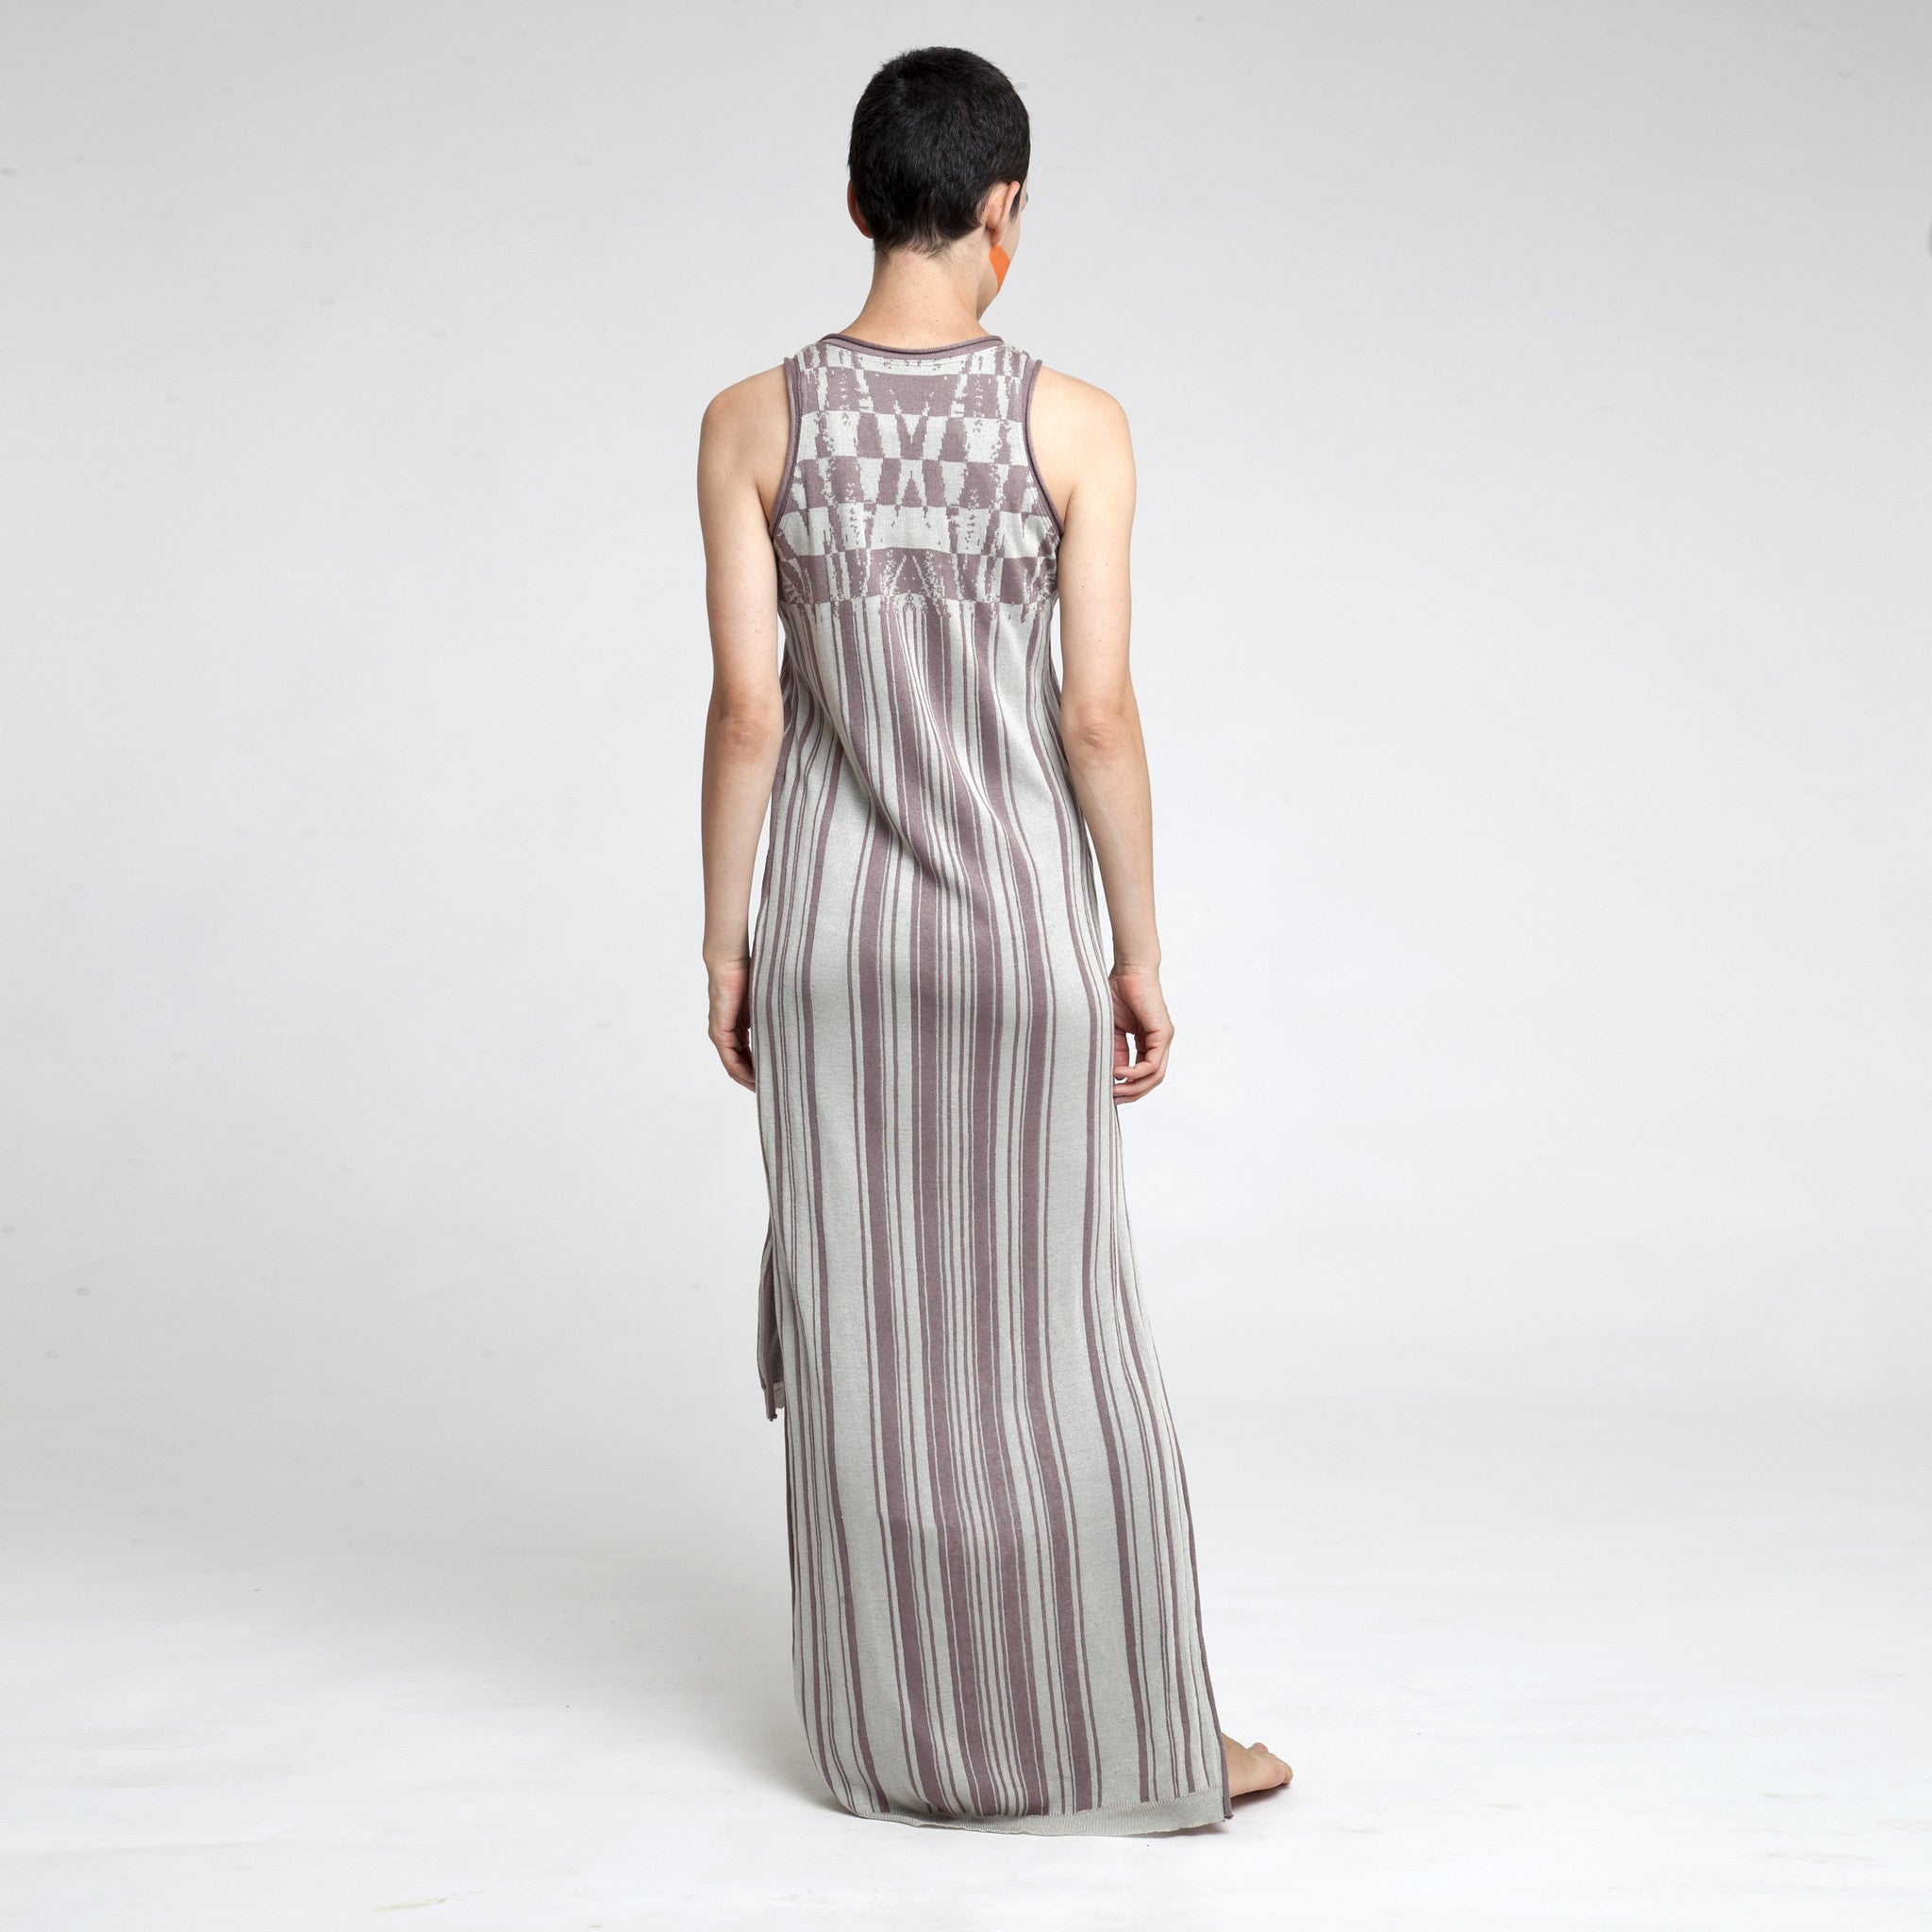 Sample Sale - Knitted jacquard Maxi dress in stone and black size S-M - DuendeFashion  - 4